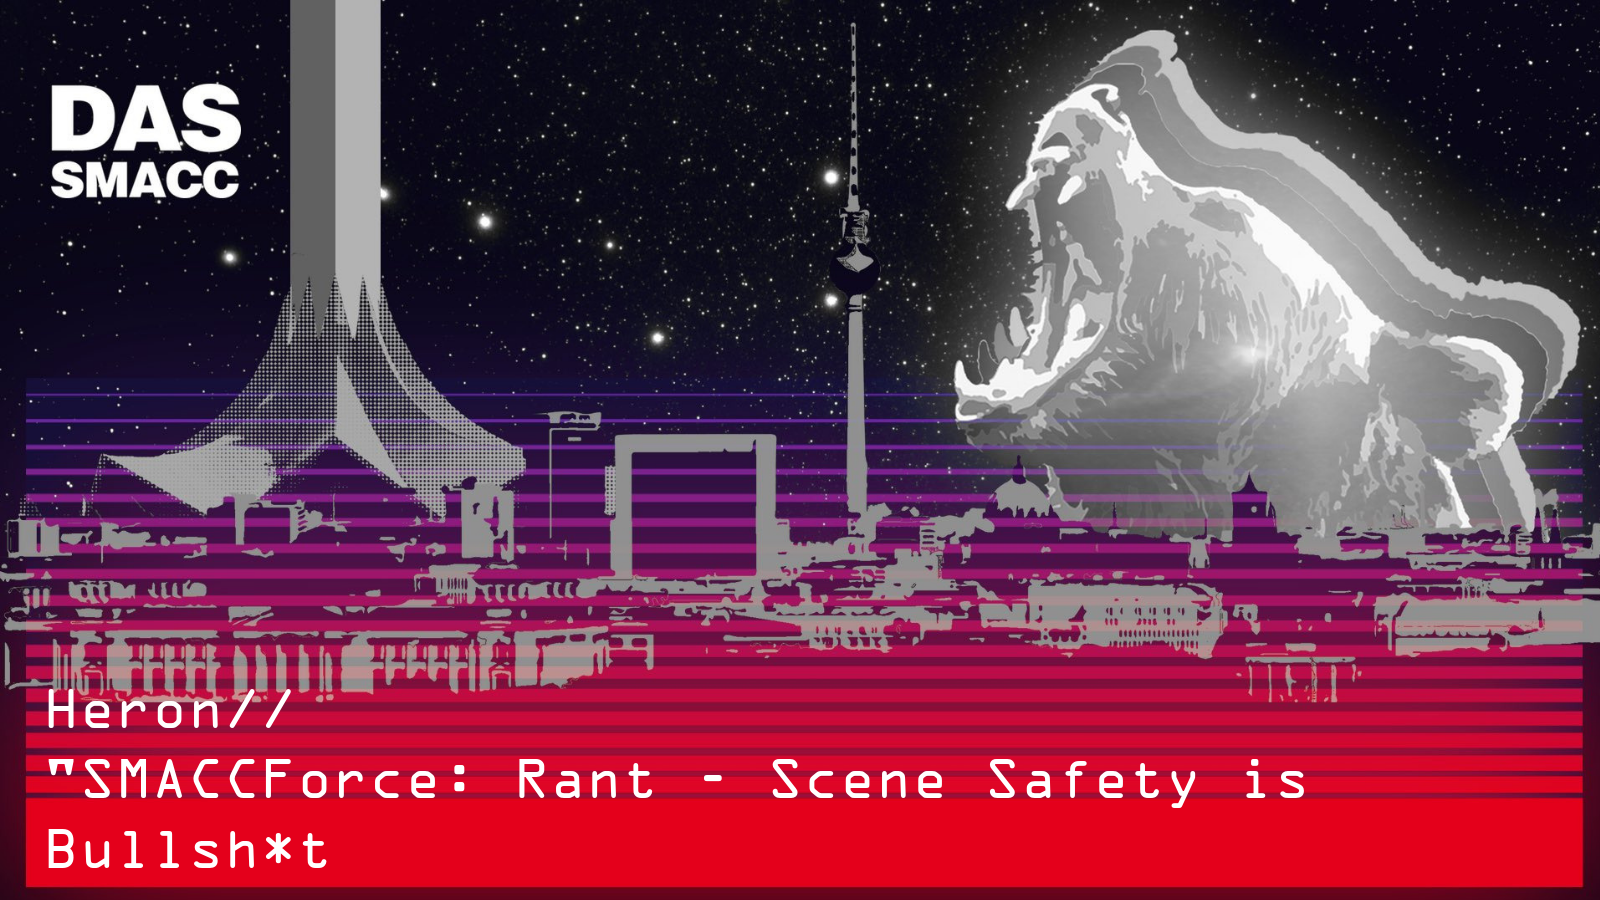 Rant - Scene Safety is Bullshit